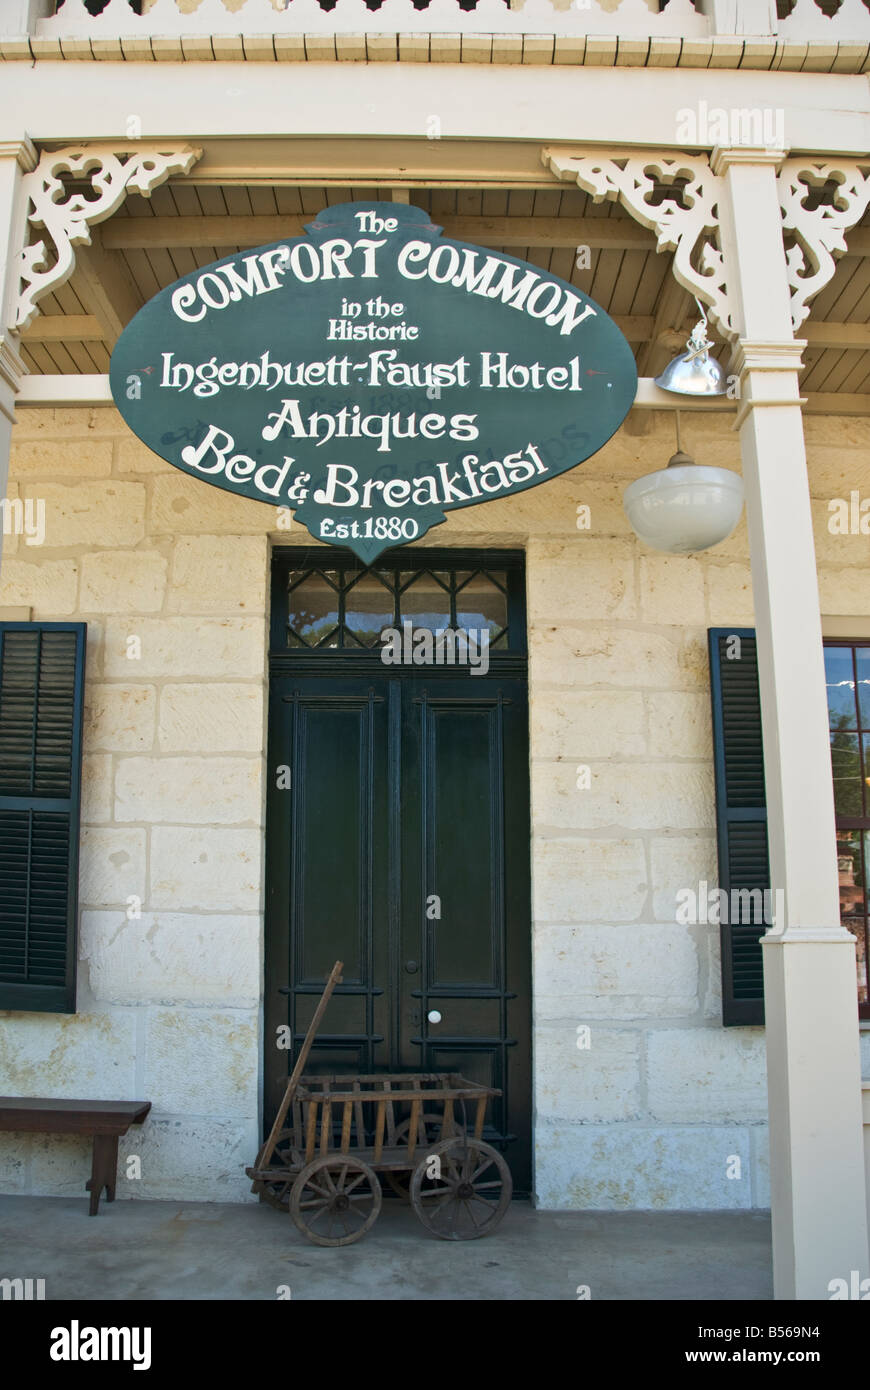 Texas Hill Country Comfort National Historic District Ingenhuett Faust Hotel B B antique shop - Stock Image